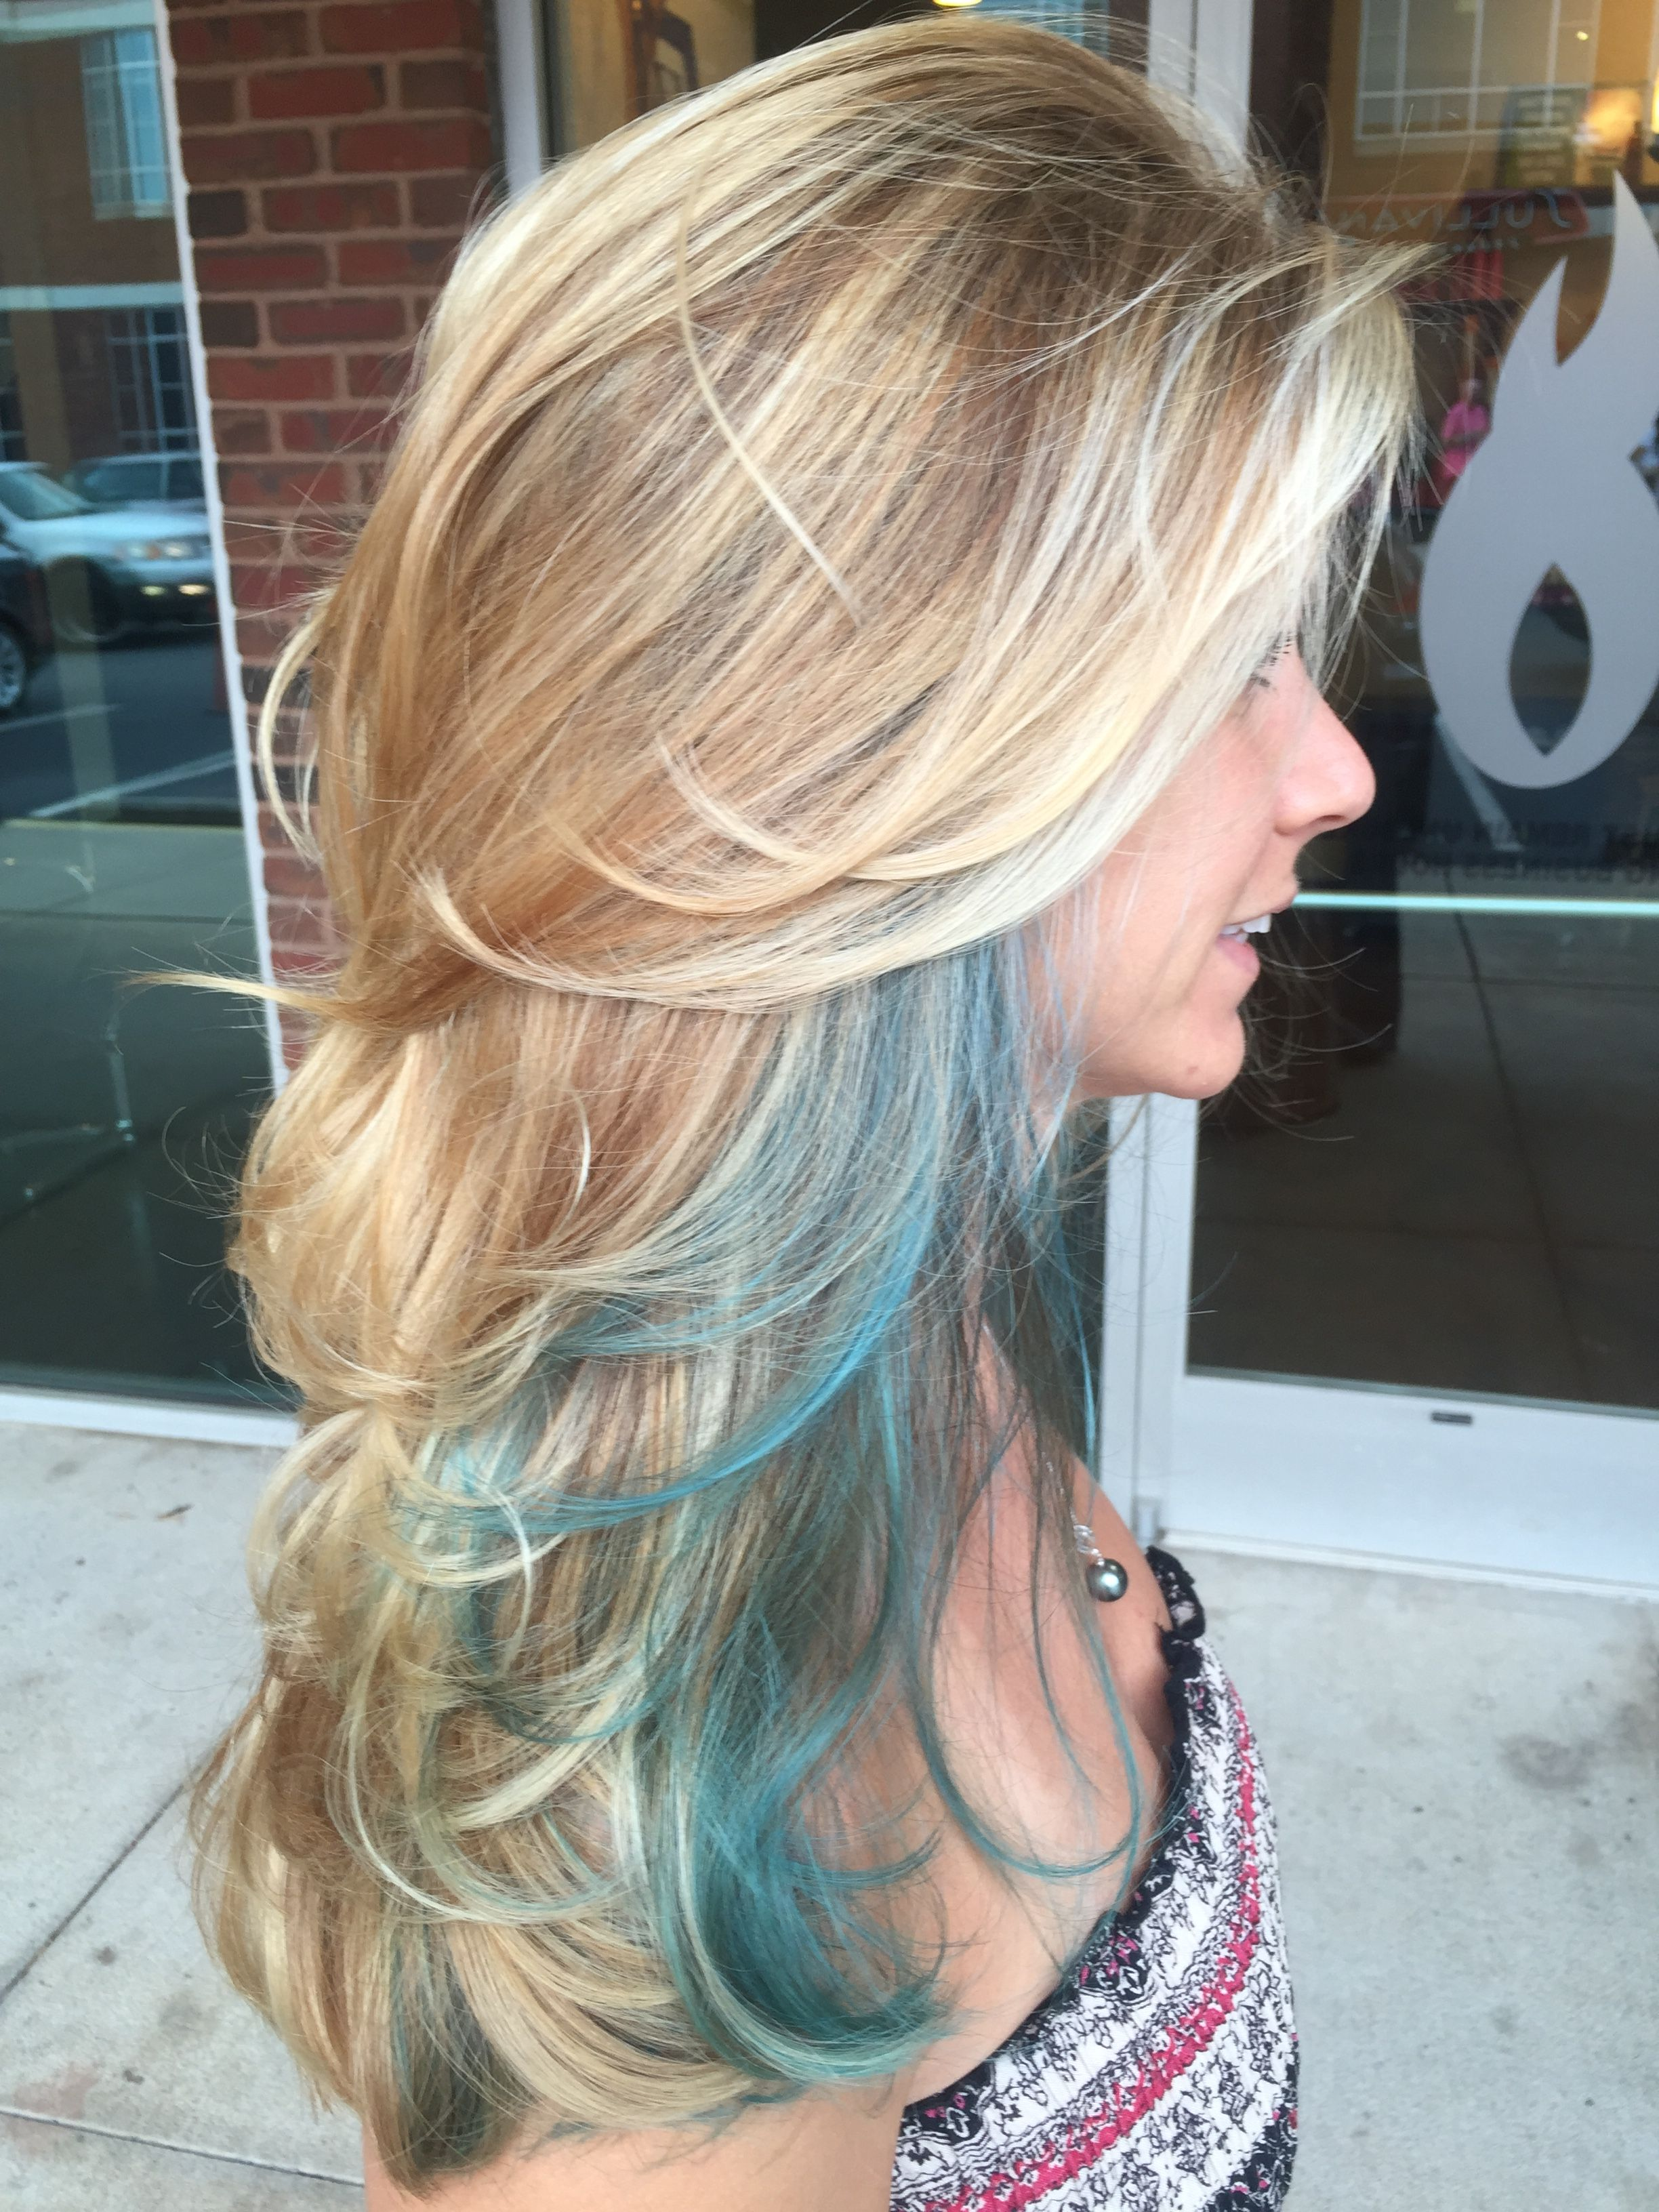 Long Layers Blonde Balayage With A Teal Streak Hair Streaks Blonde Blonde Hair Color Teal Hair Highlights